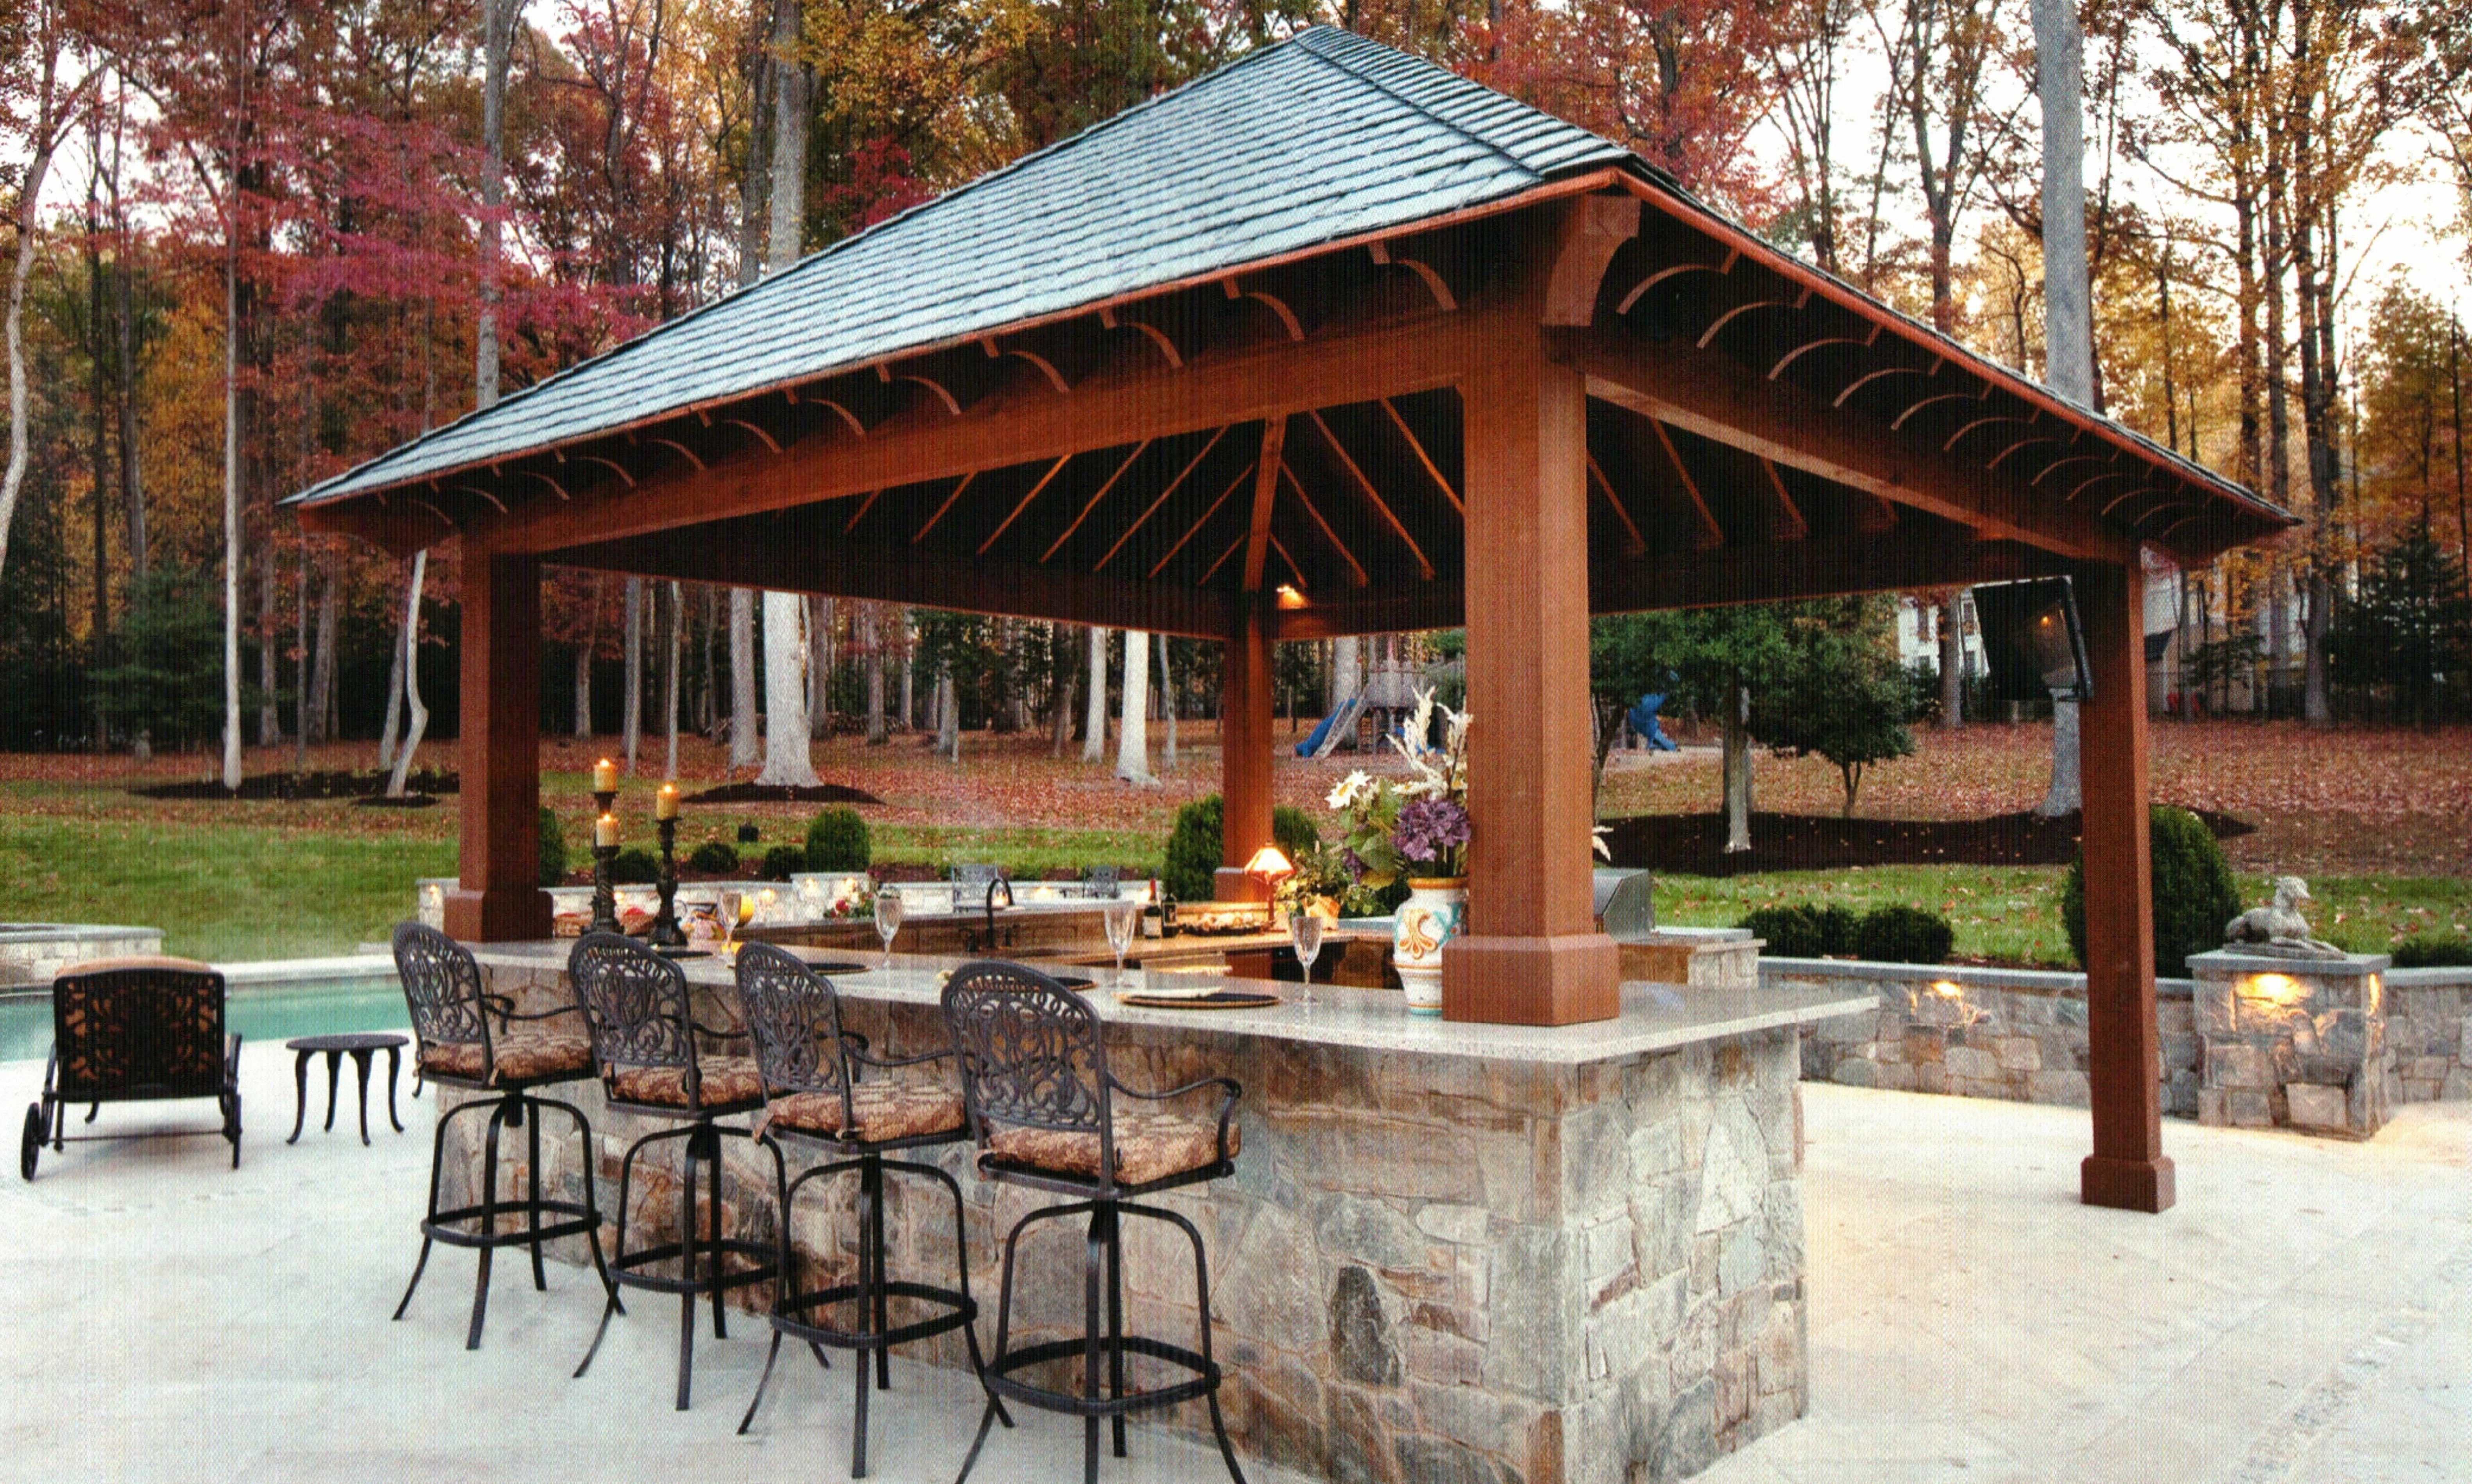 Outdoor Kitchen With Bar Design Tool Pool Pergola Plans Deck For Outdoor Kitchen Beverage Center Good Outdoor Kitchen Bev Backyard Bar Pergola Outdoor Backyard